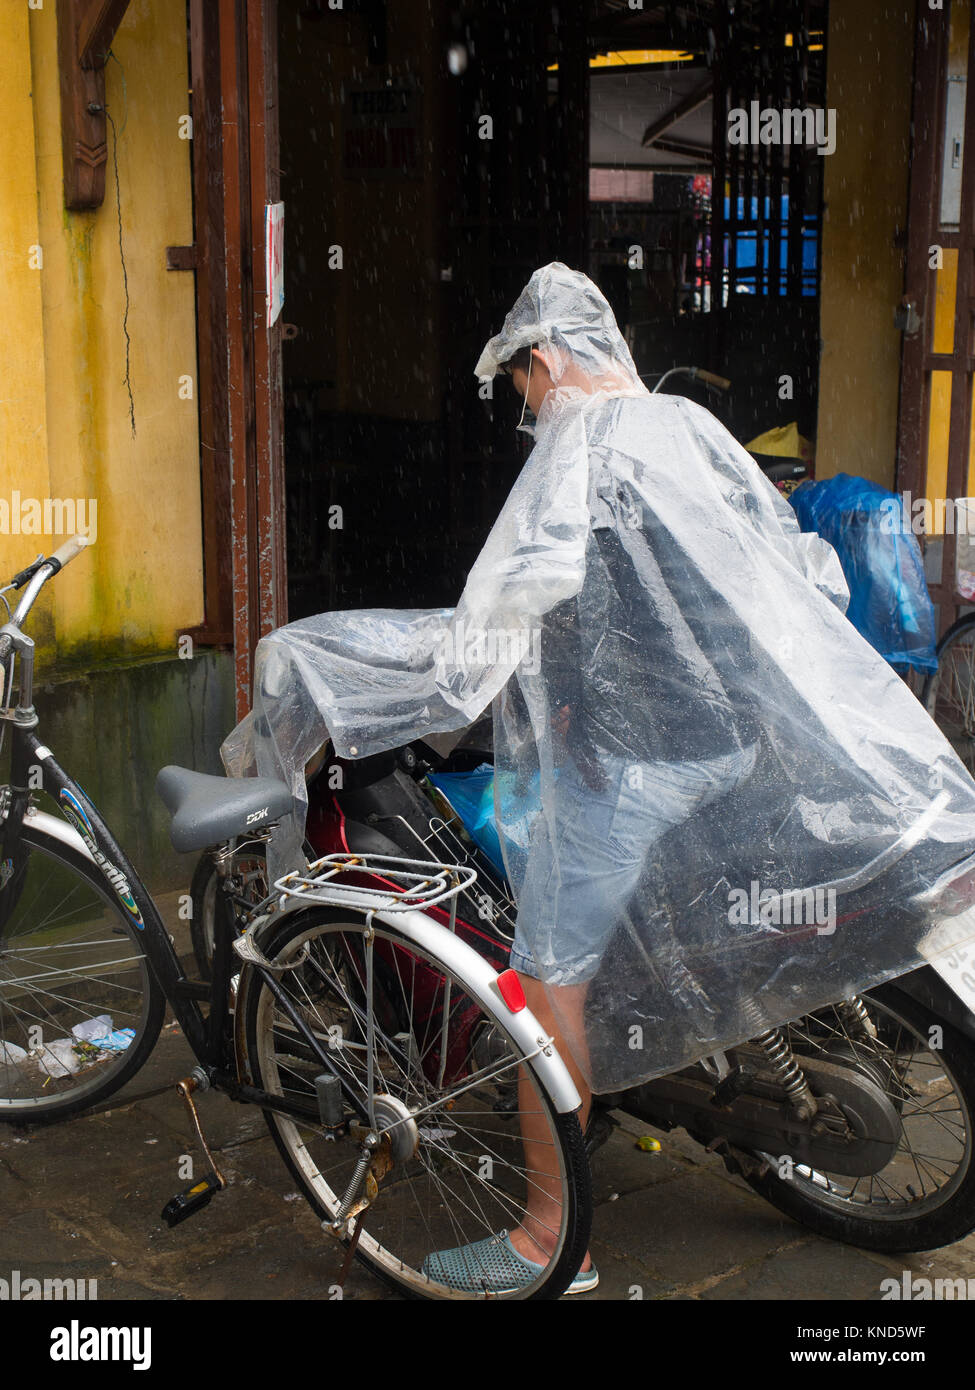 Motorcyclist In A Poncho - Stock Image